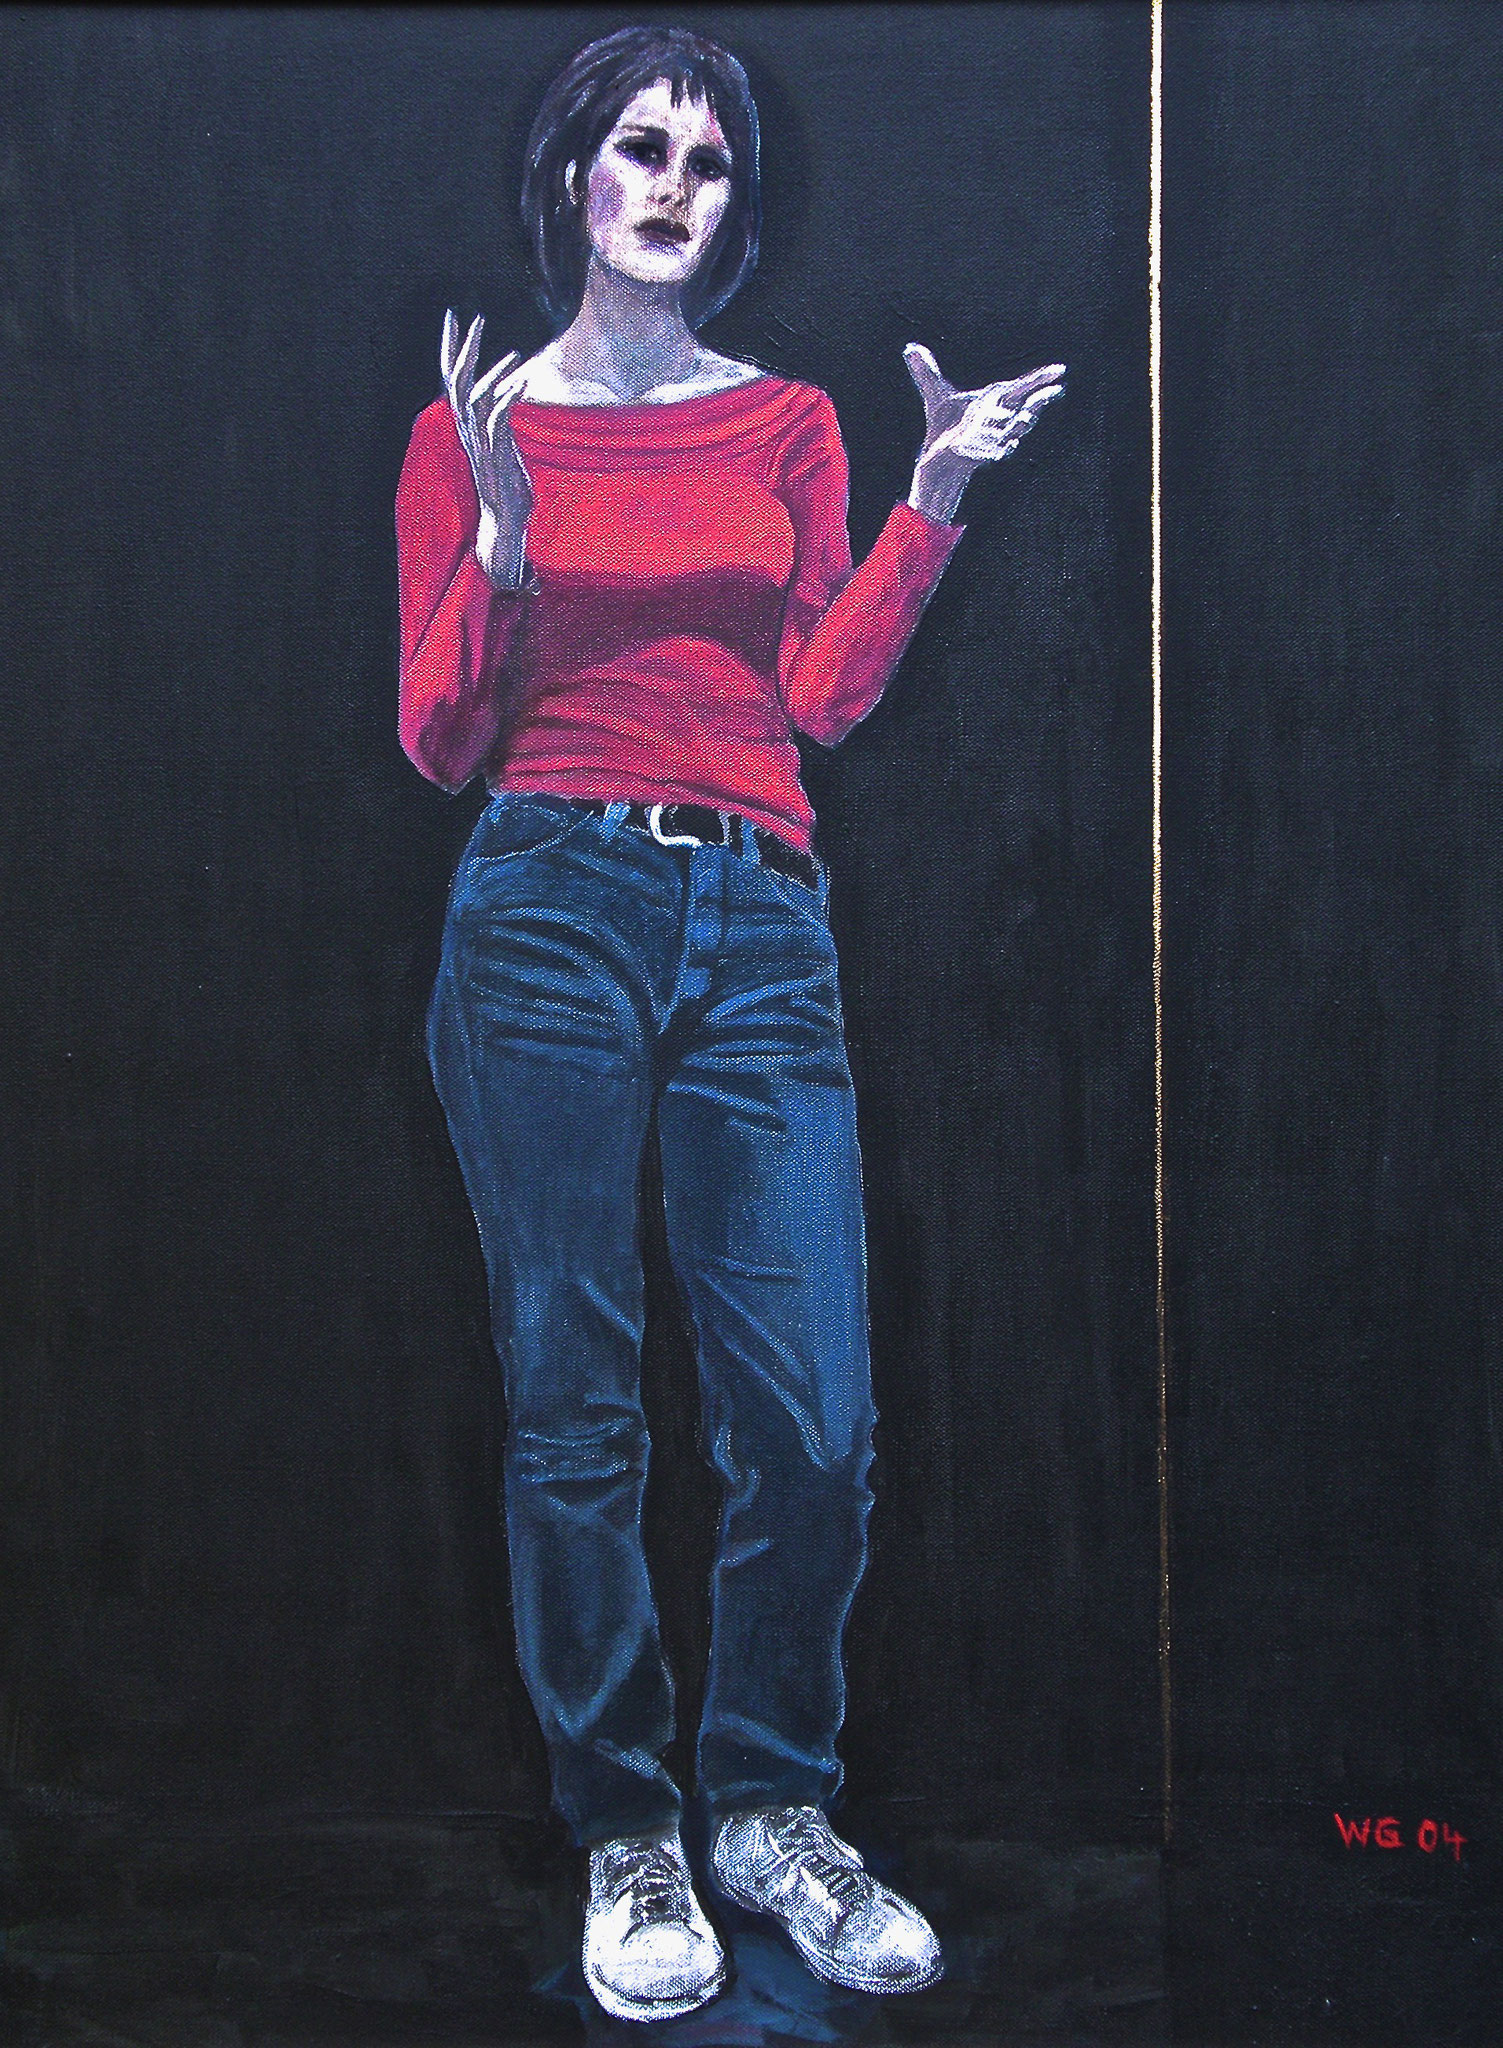 """Roter Pullover"", Acryl auf Baumwolle, 80x60, 2004"